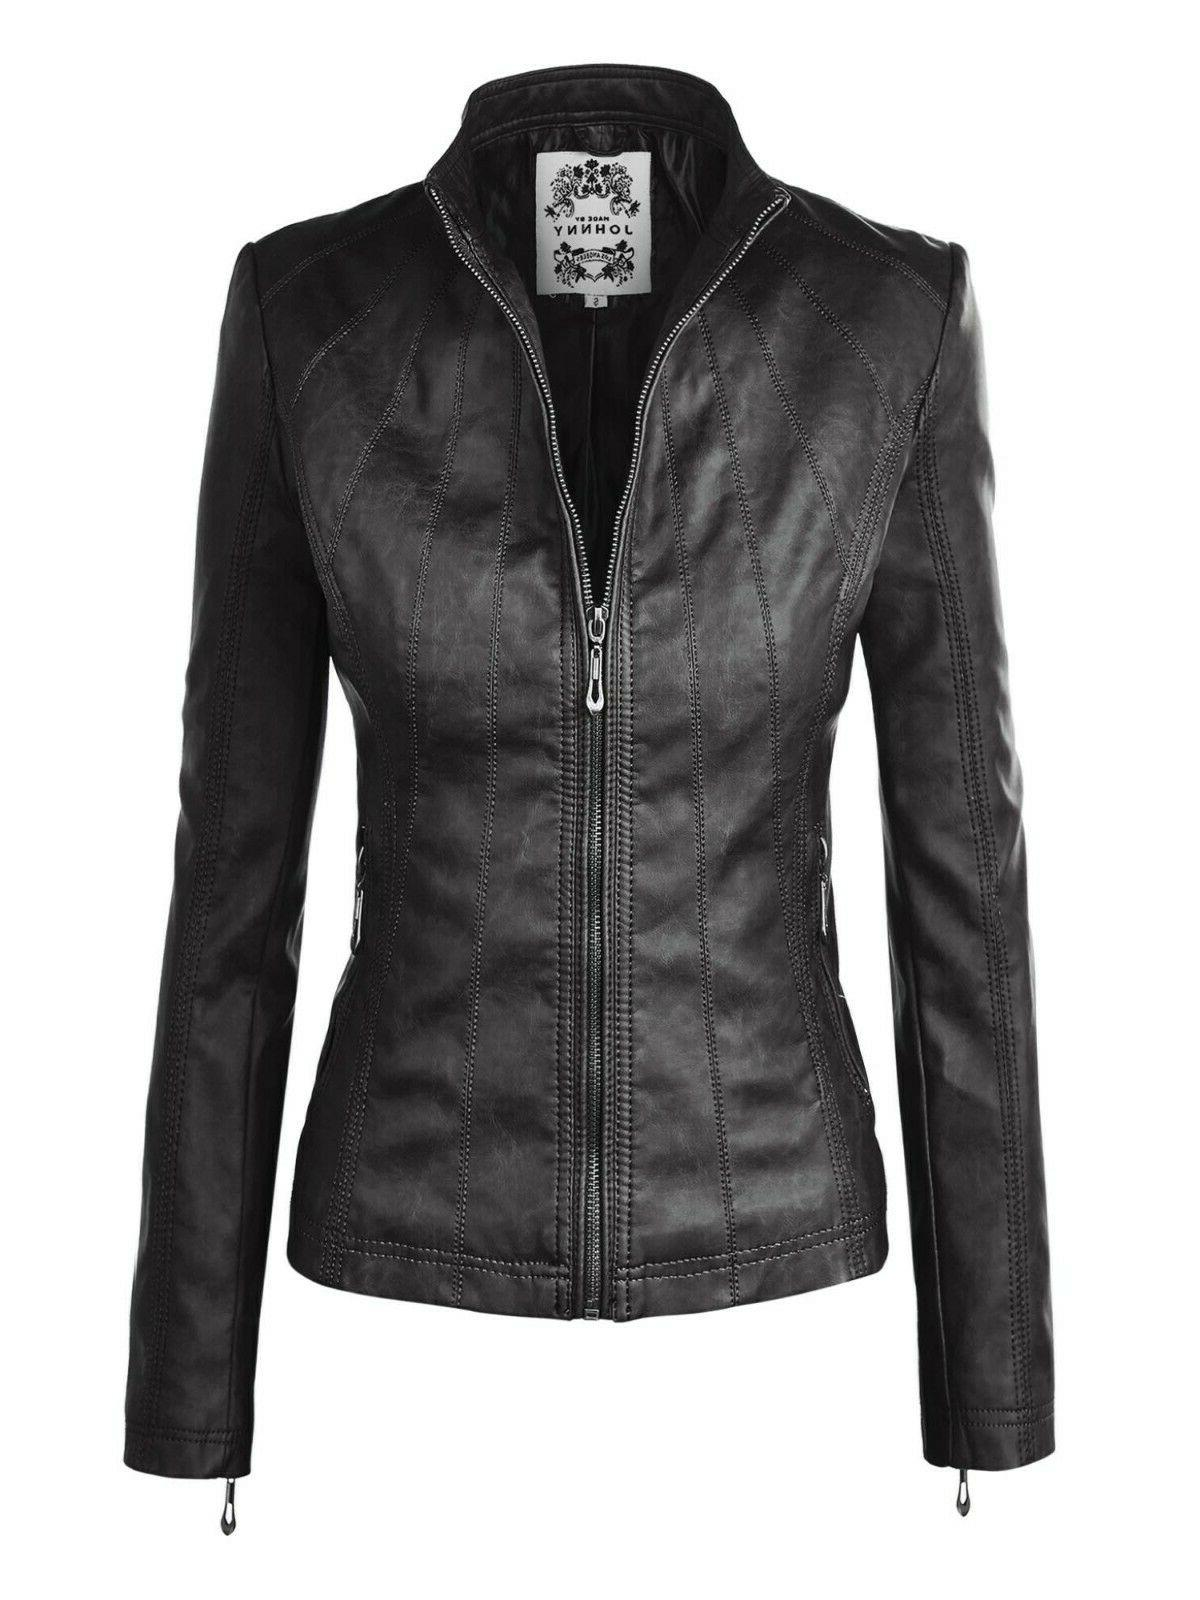 mbj wjc877 womens panelled faux leather moto